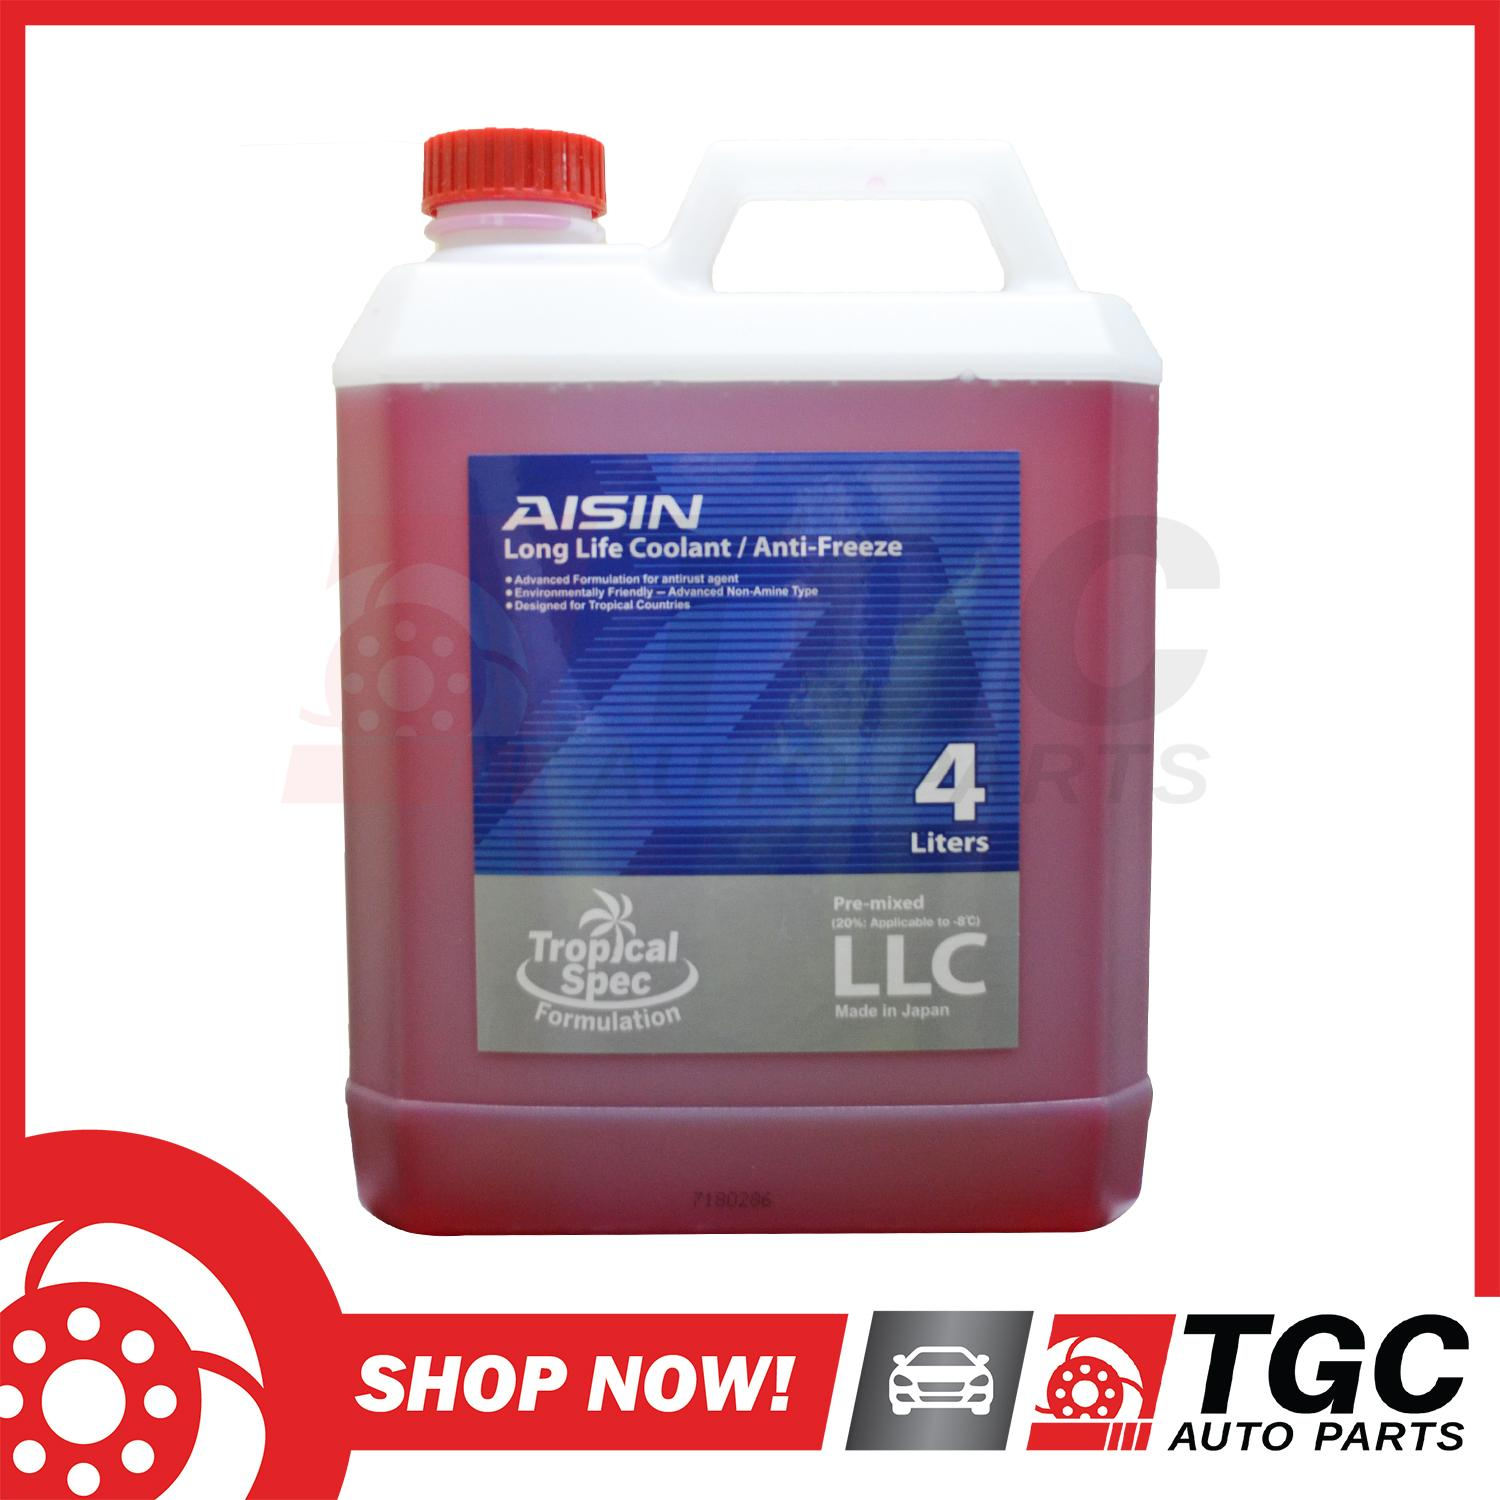 AISIN Long Life RED Coolant/Anti-Freeze Tropical Spec Formulation Pre-Mixed  Made in Japan 4Liter